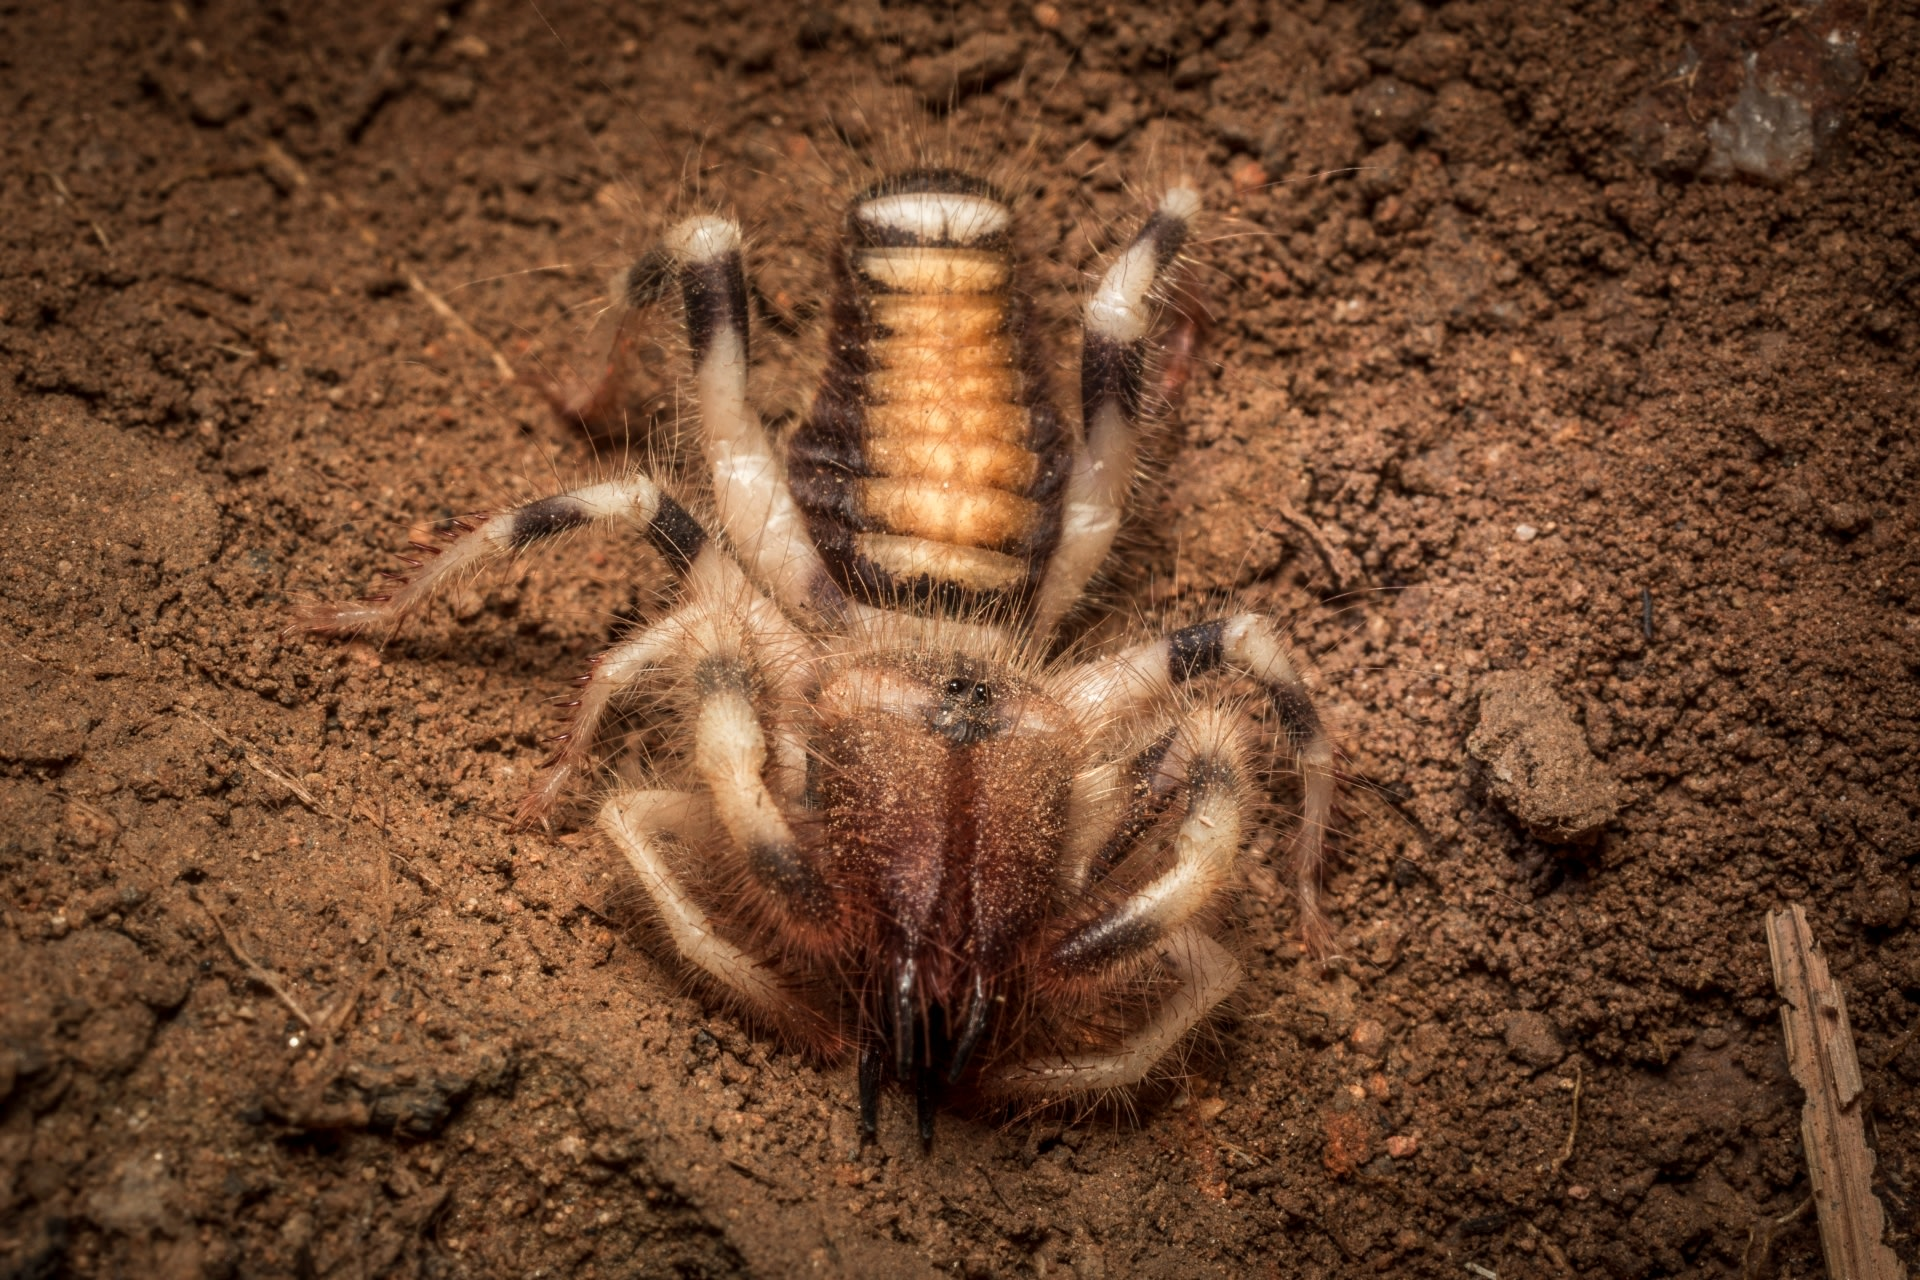 The jaws (chelicerae) of a camel spider are nearly one-third its body length. Each segment is lined with razor-sharp teeth and sense organs. Photo: Samuel John